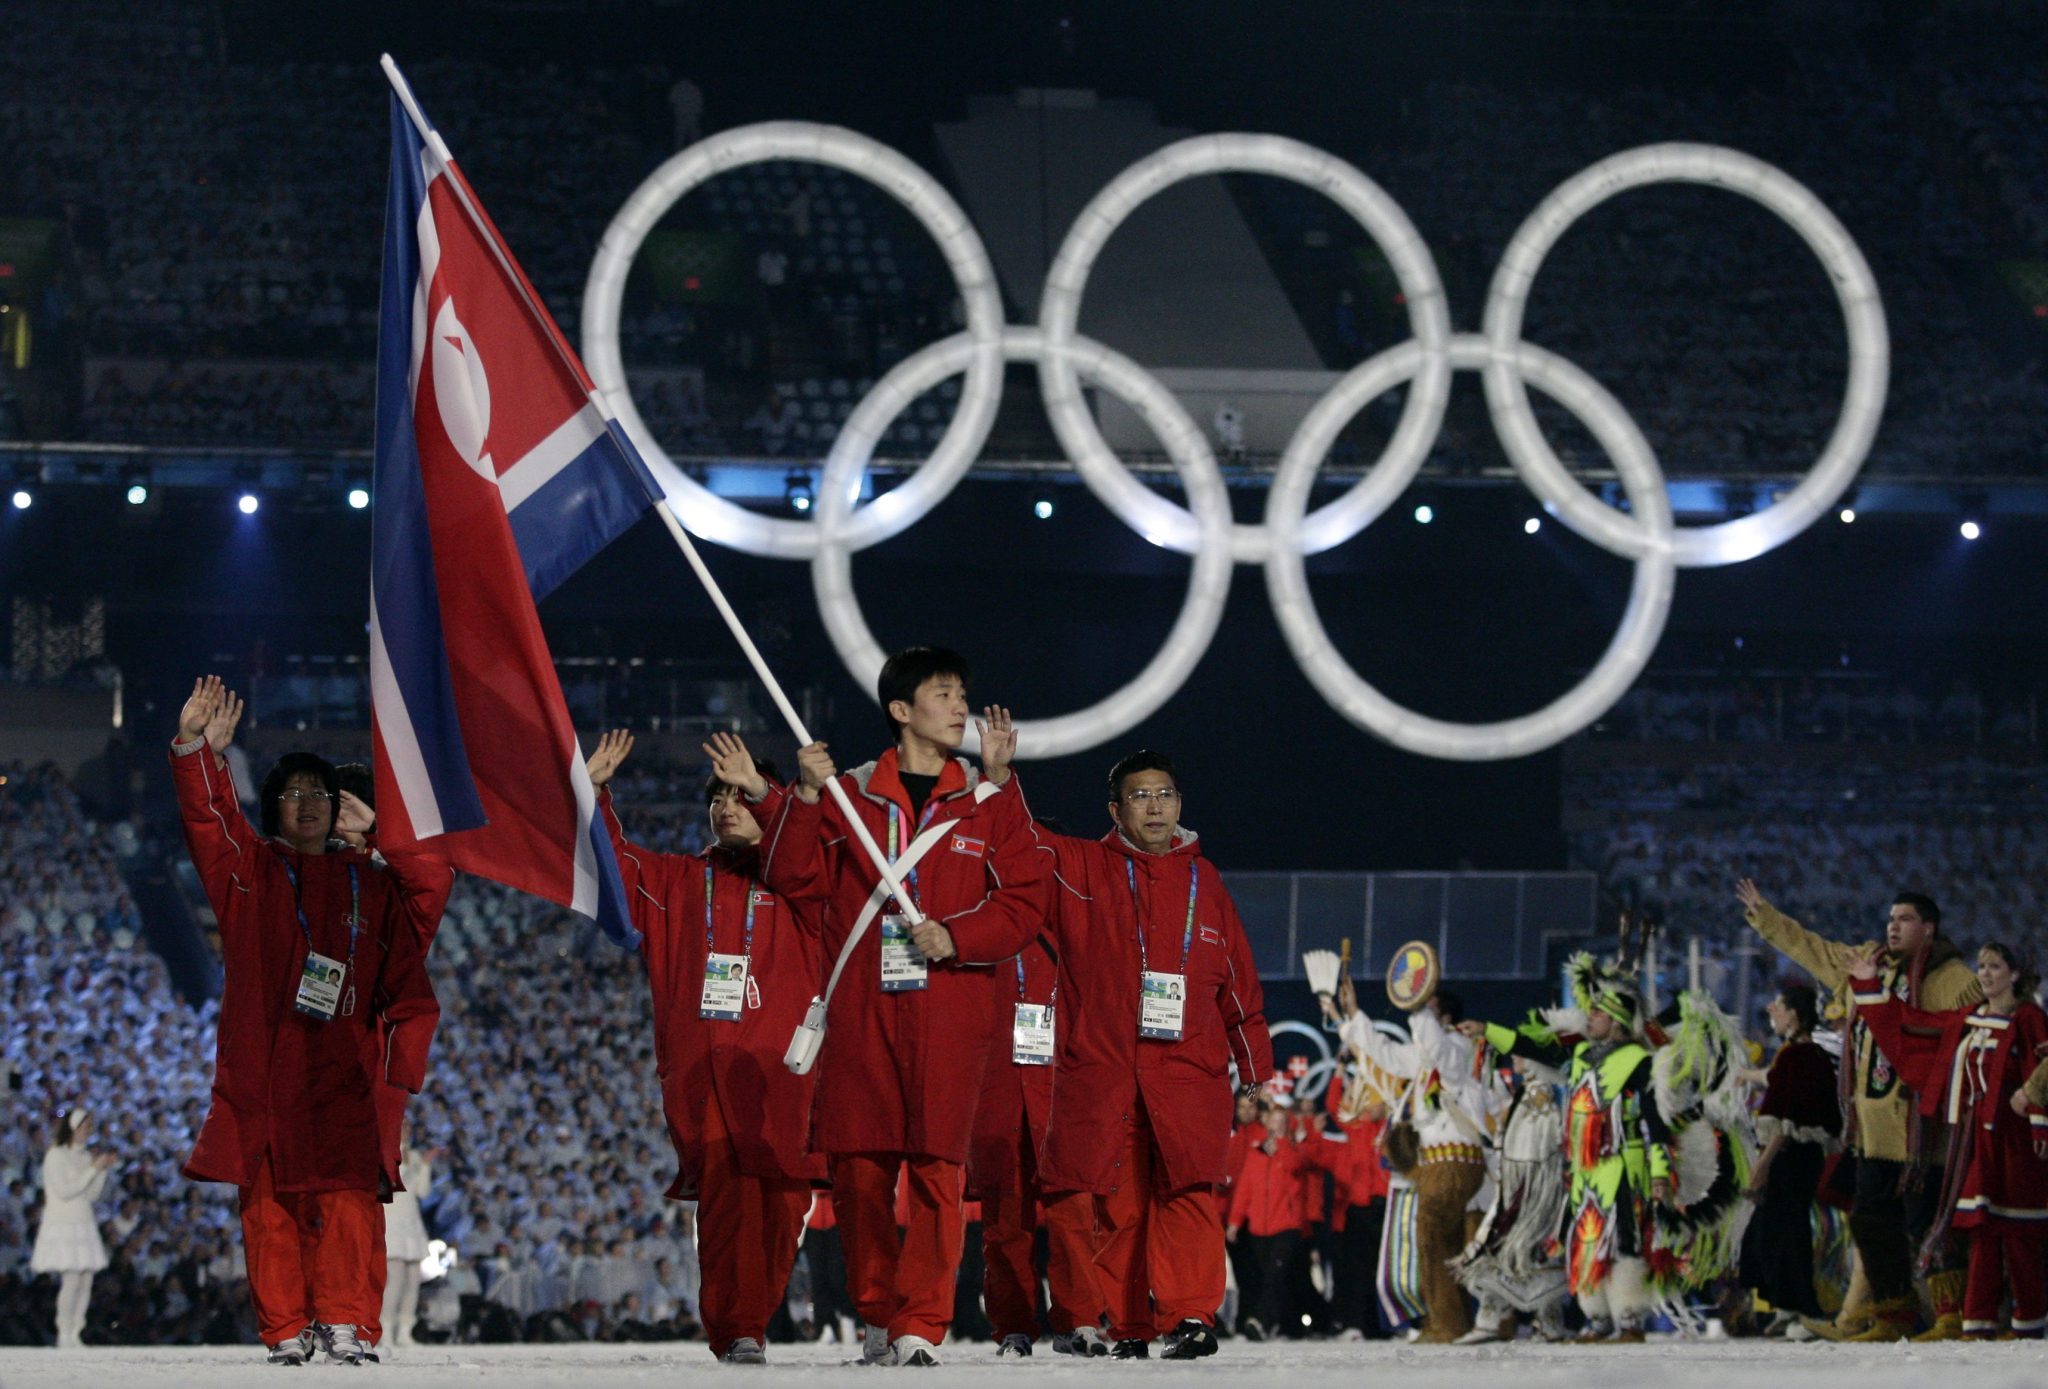 Most recent North Korean delegate to the Winter Olympics in 2010: Flag bearer Ri of North Korea leads his country's contingent during the opening ceremony of the Vancouver 2010 Winter Olympics | REUTERS